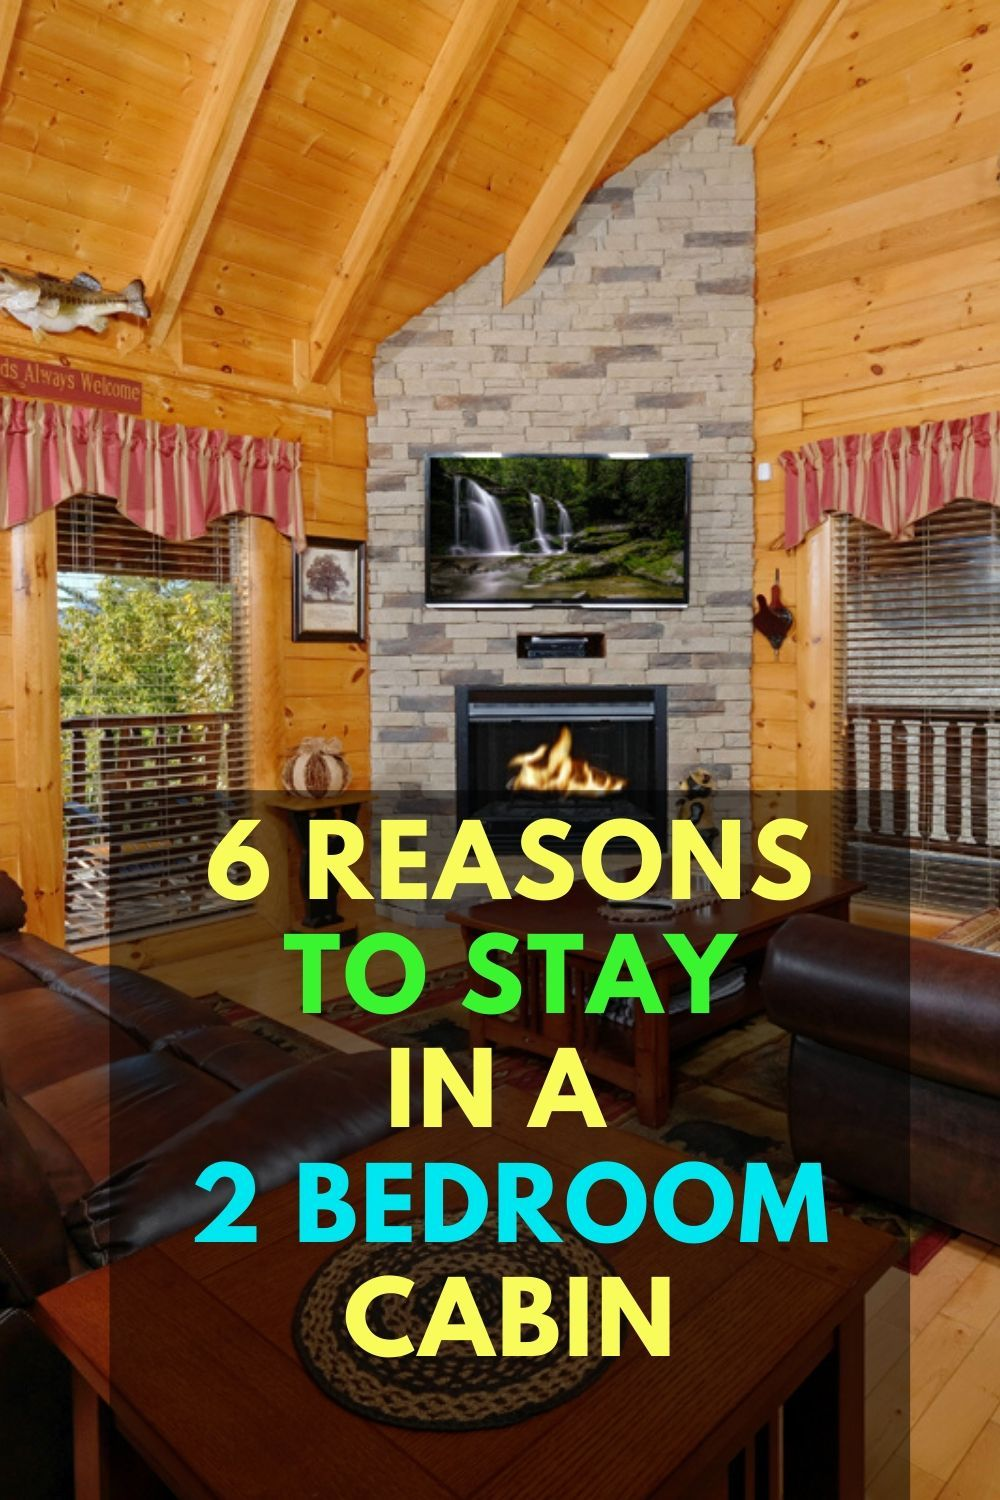 Top 6 Reasons To Stay In A 2 Bedroom Cabin In 2020 Cabin Pigeon Forge Cabins Vacation Plan